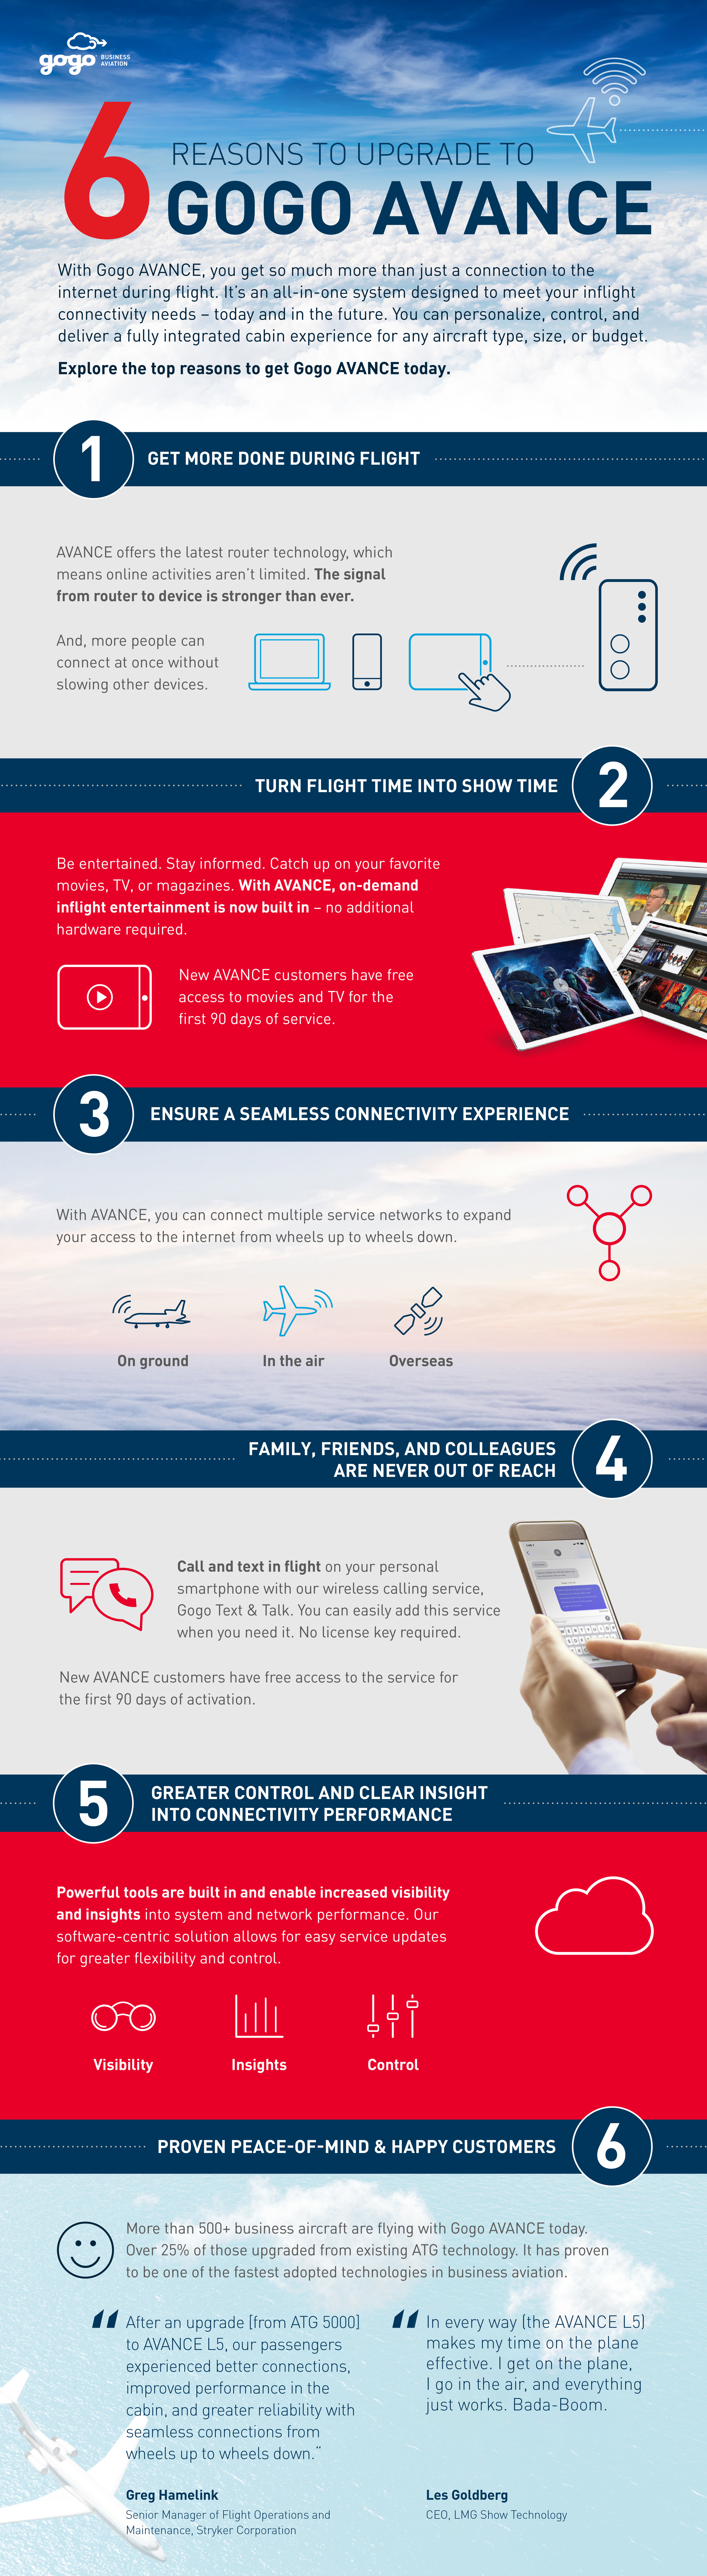 6 Reasons to Upgrade Infographic